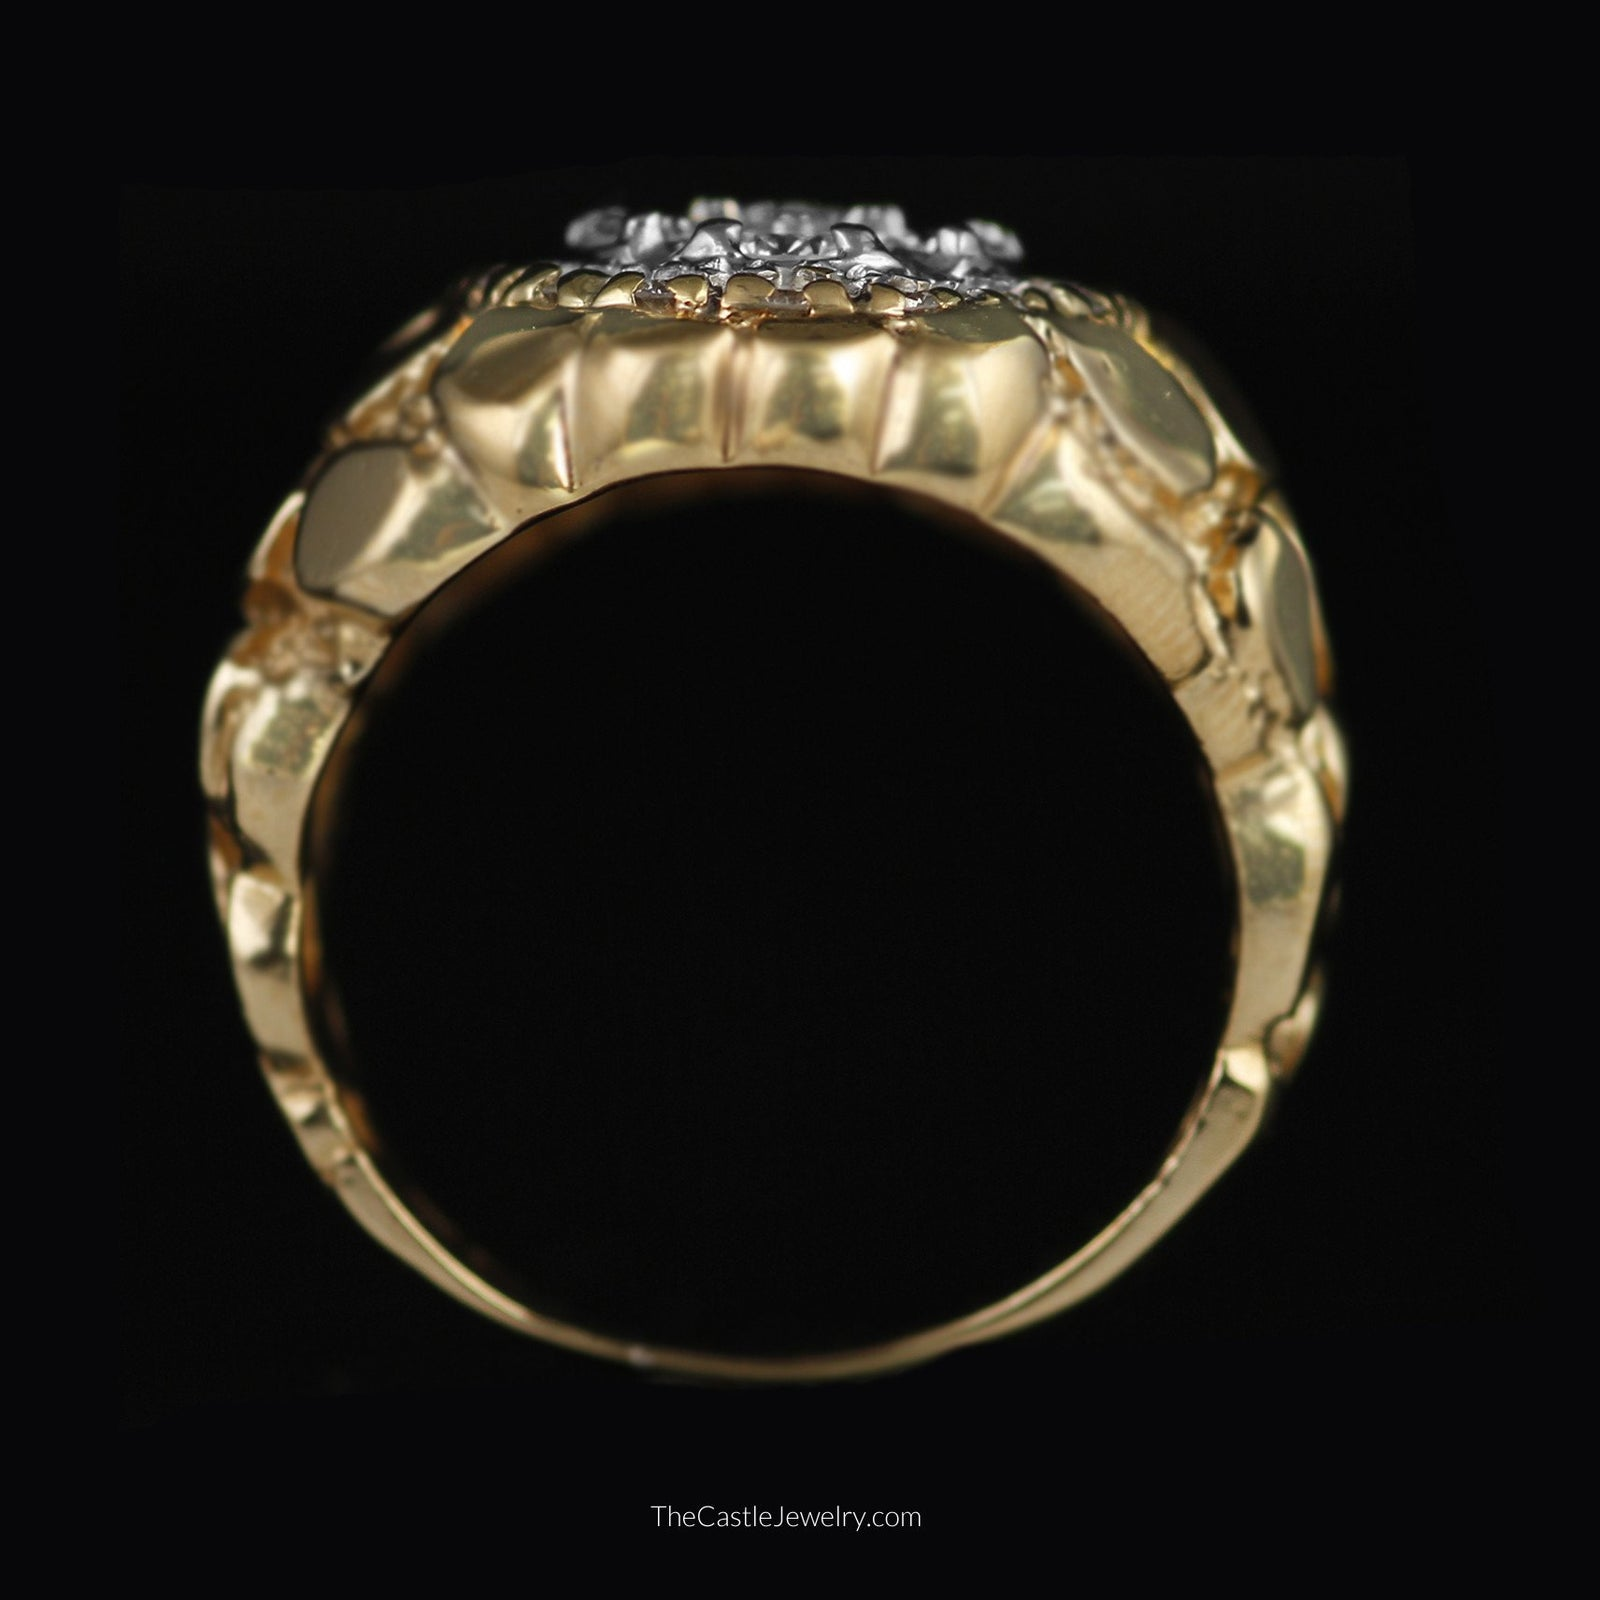 Gents Oval Diamond Cluster Ring with Nugget Designed Sides in 14K Gold-1